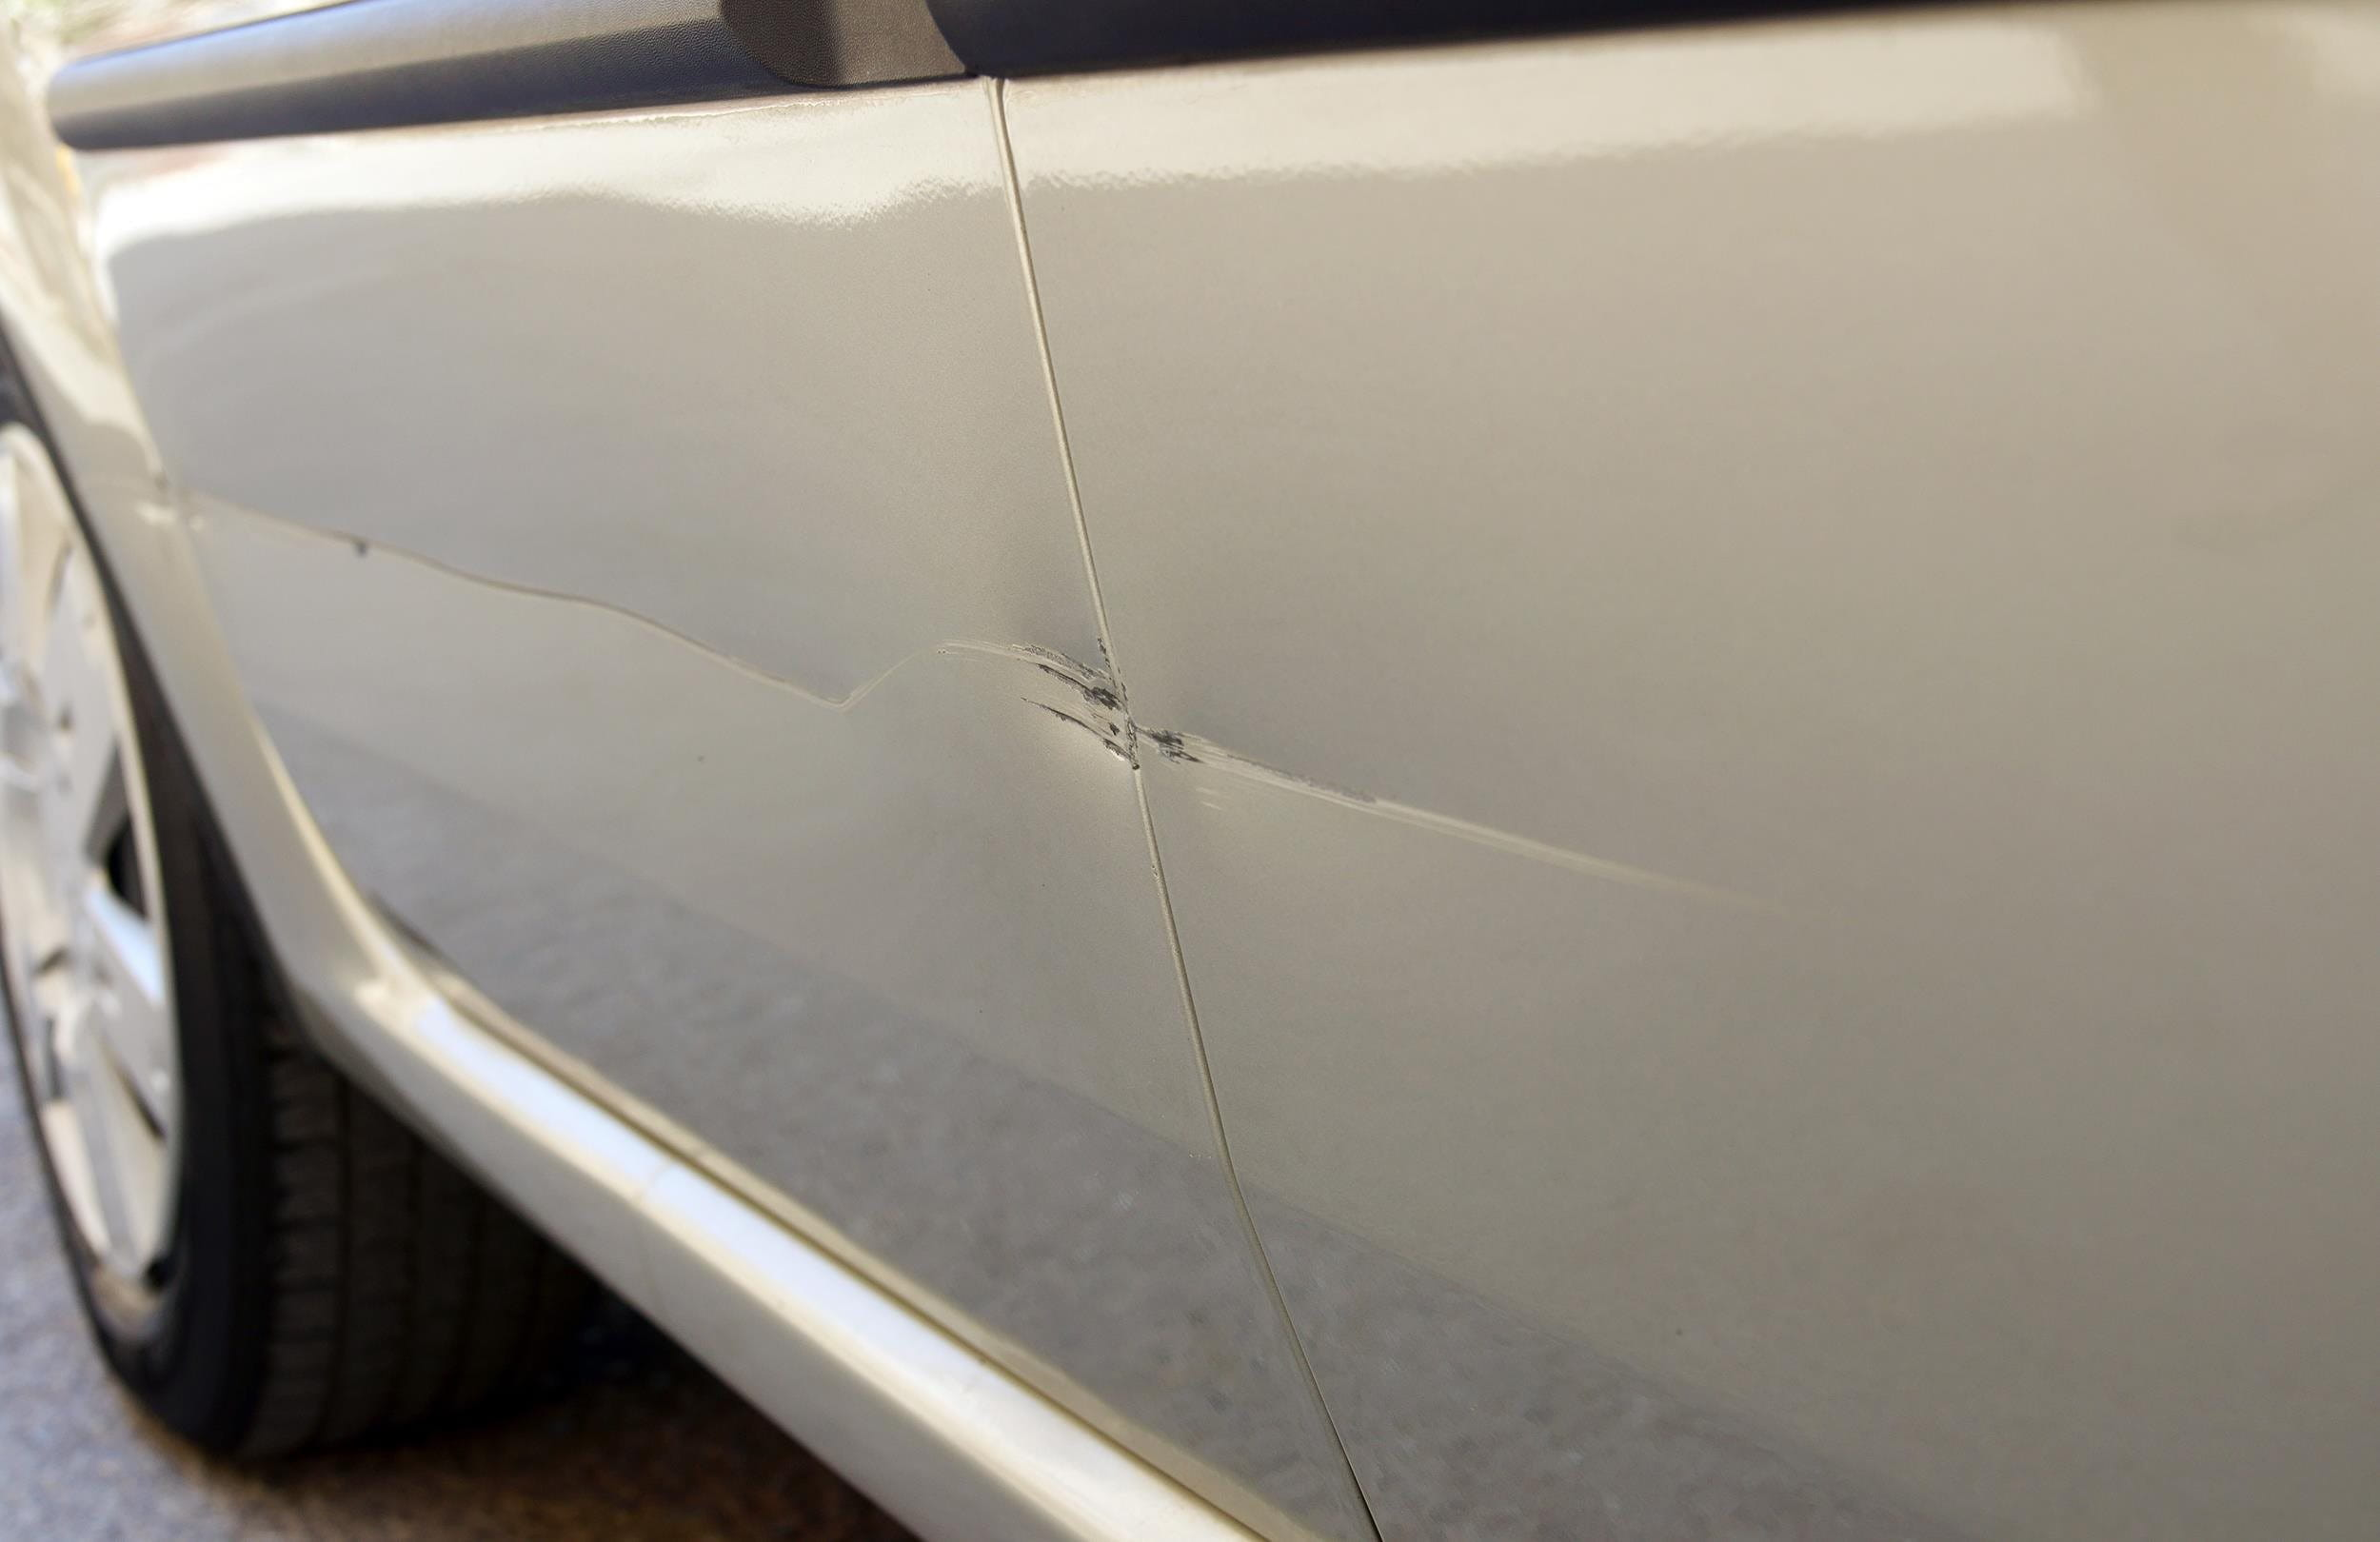 Parking damage of a third person